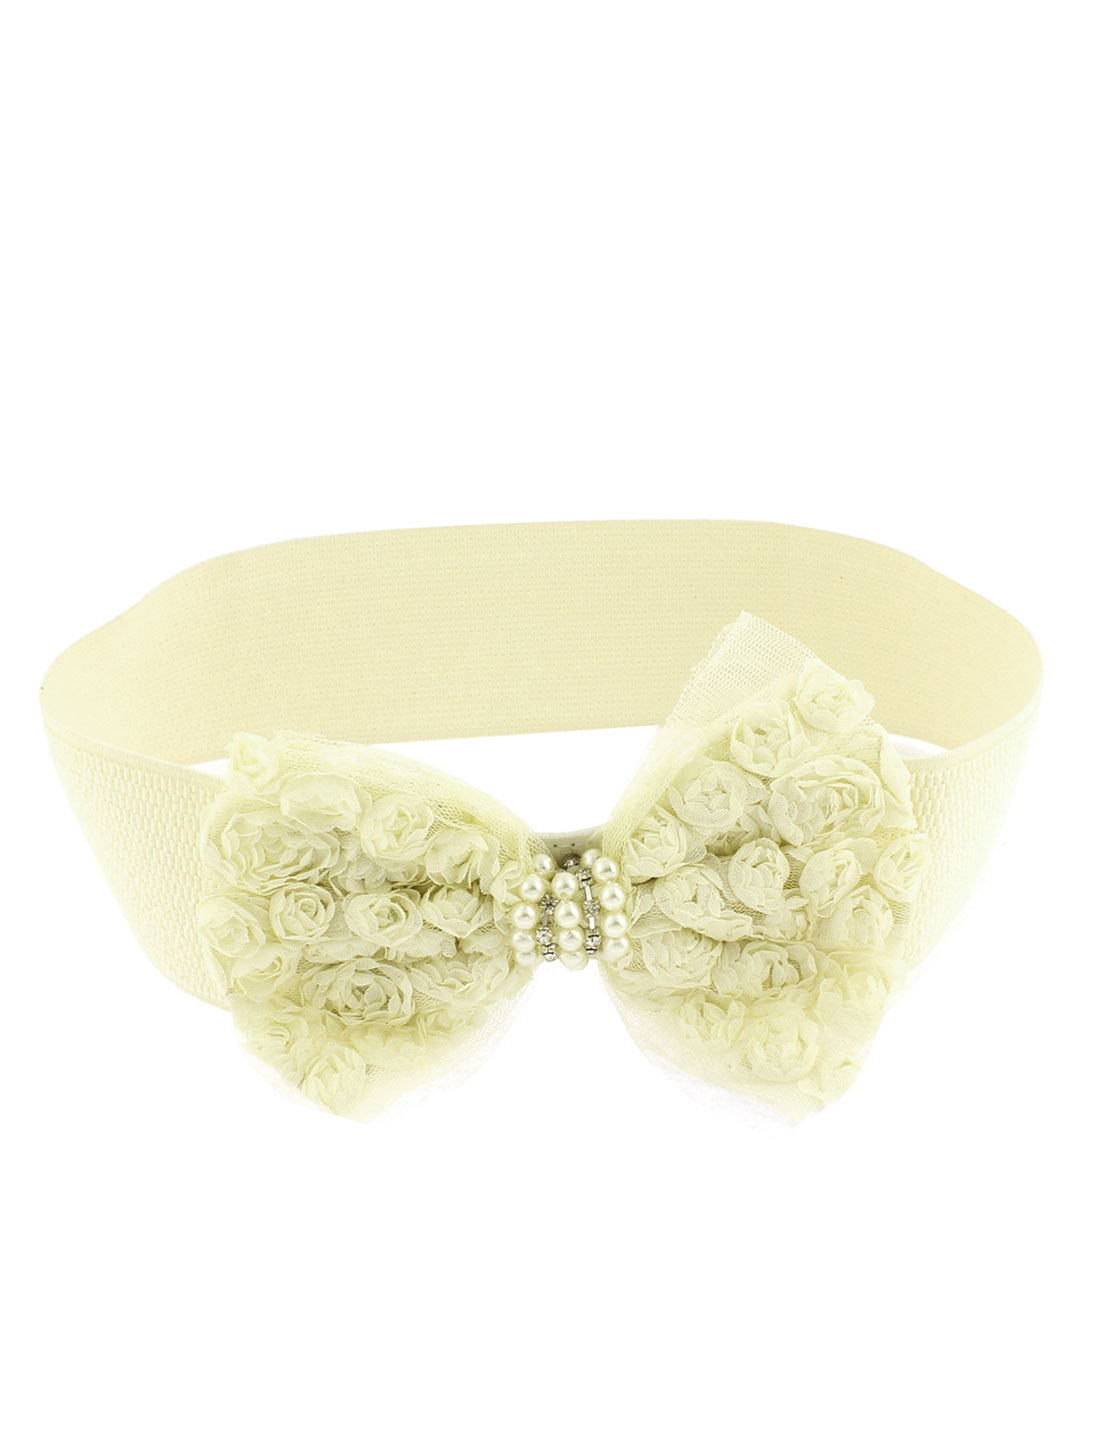 Lady Bowknot Detailing Elastic Wide Stretch Buckle Waistband Waist Belt